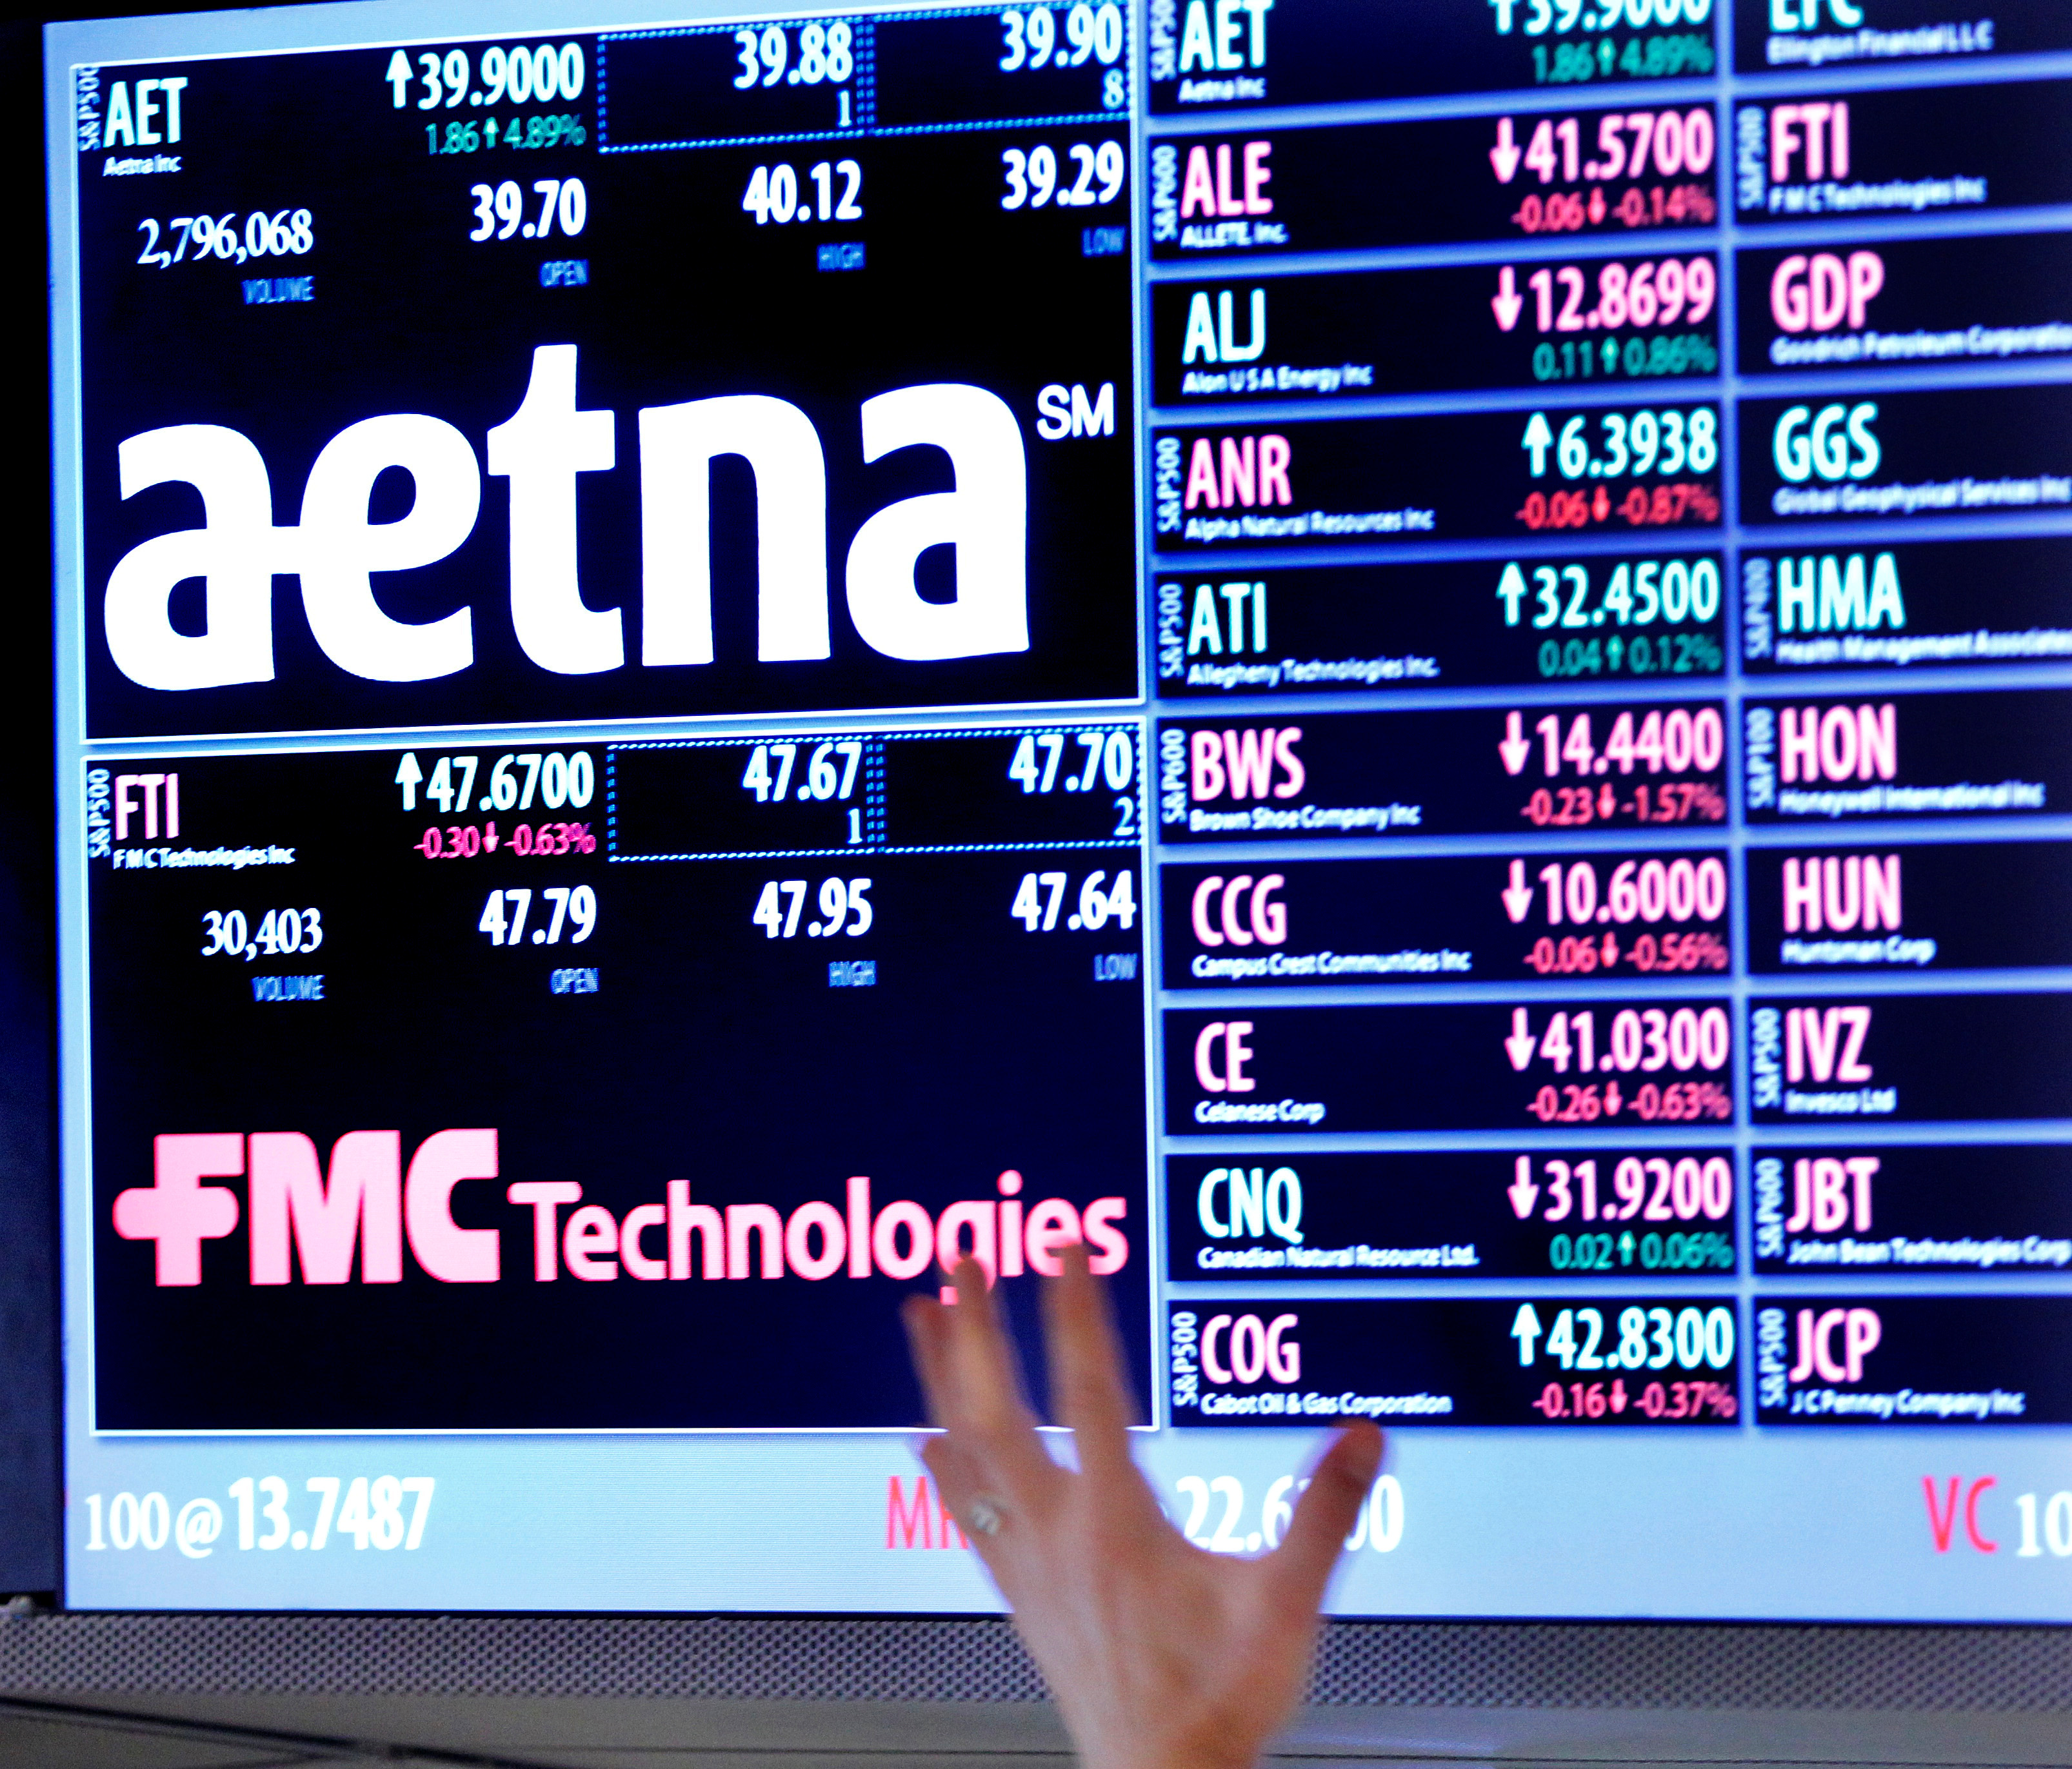 Judge blocks Aetna's $37b deal for Humana